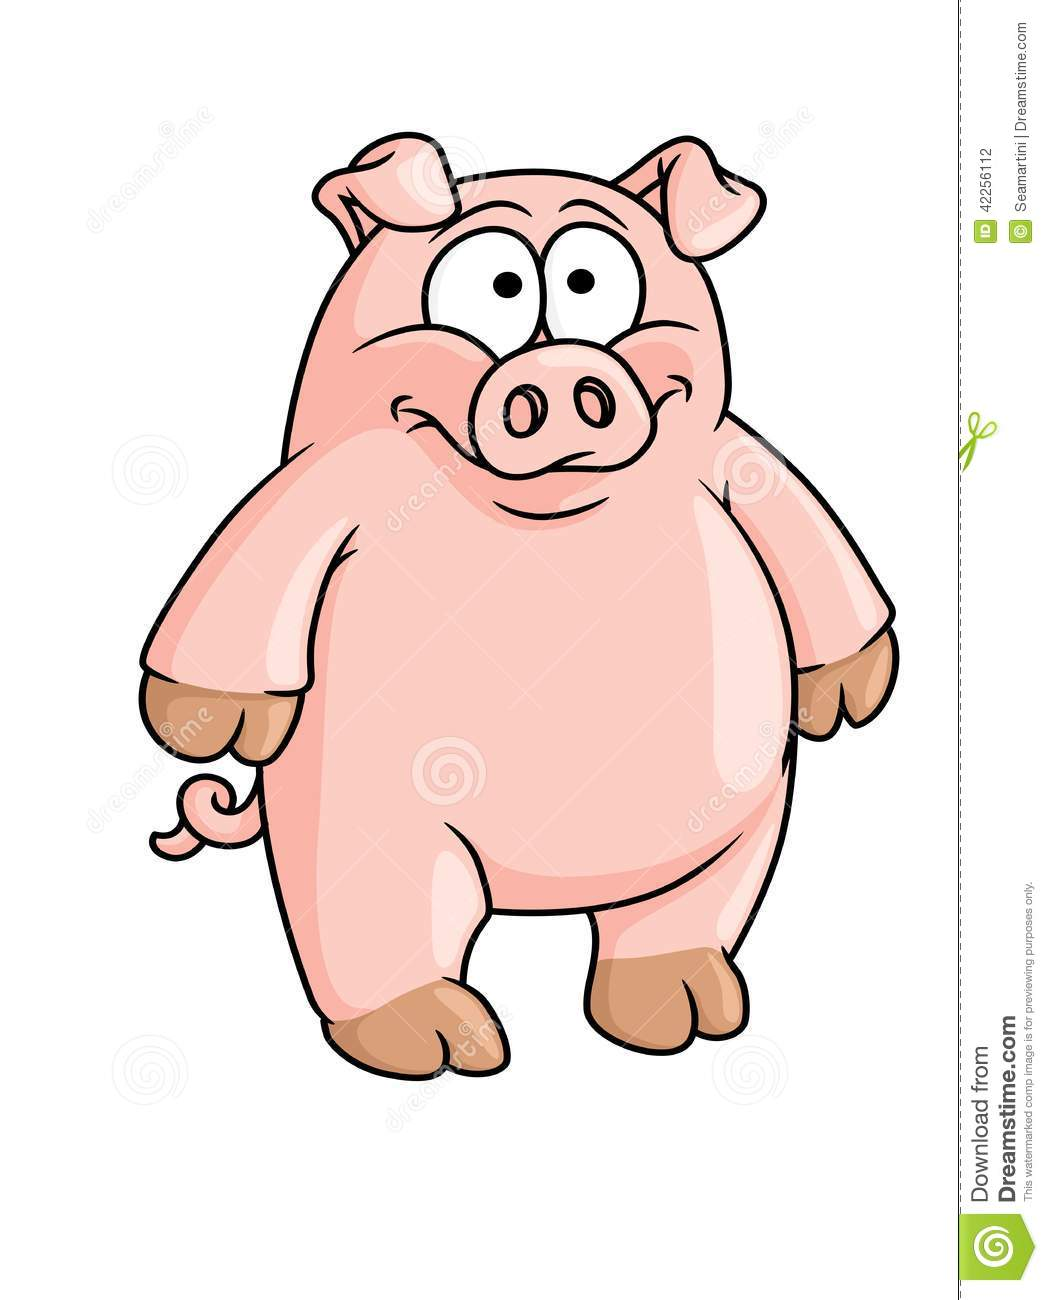 Animated pigs standing - photo#1